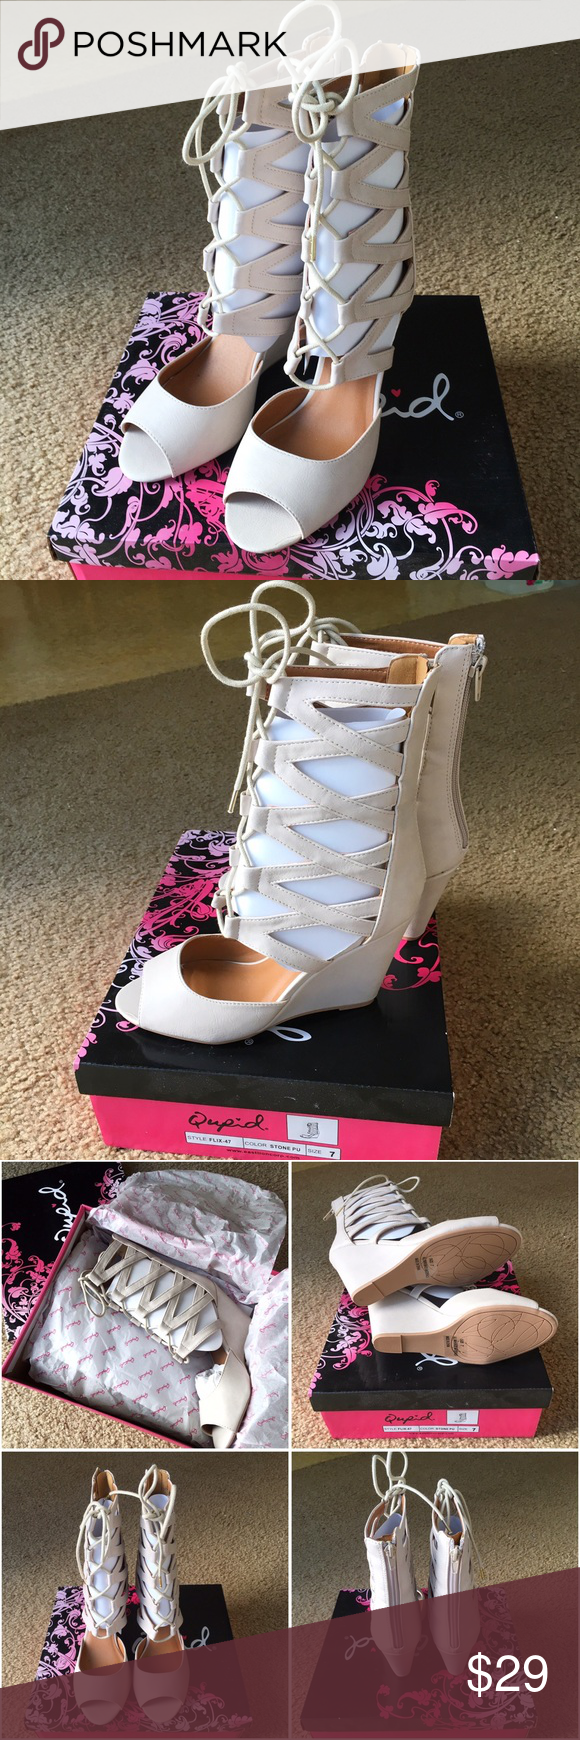 🎉Sale🎉Qupid Peep Toe Lace Up Gladiator Wedge Qupid Peep Toe Lace Up Gladiator Wedge. NWT. Color Stone. Size 7. 🎉1 Day Sale. Price is Firm.🎉 Qupid Shoes Wedges